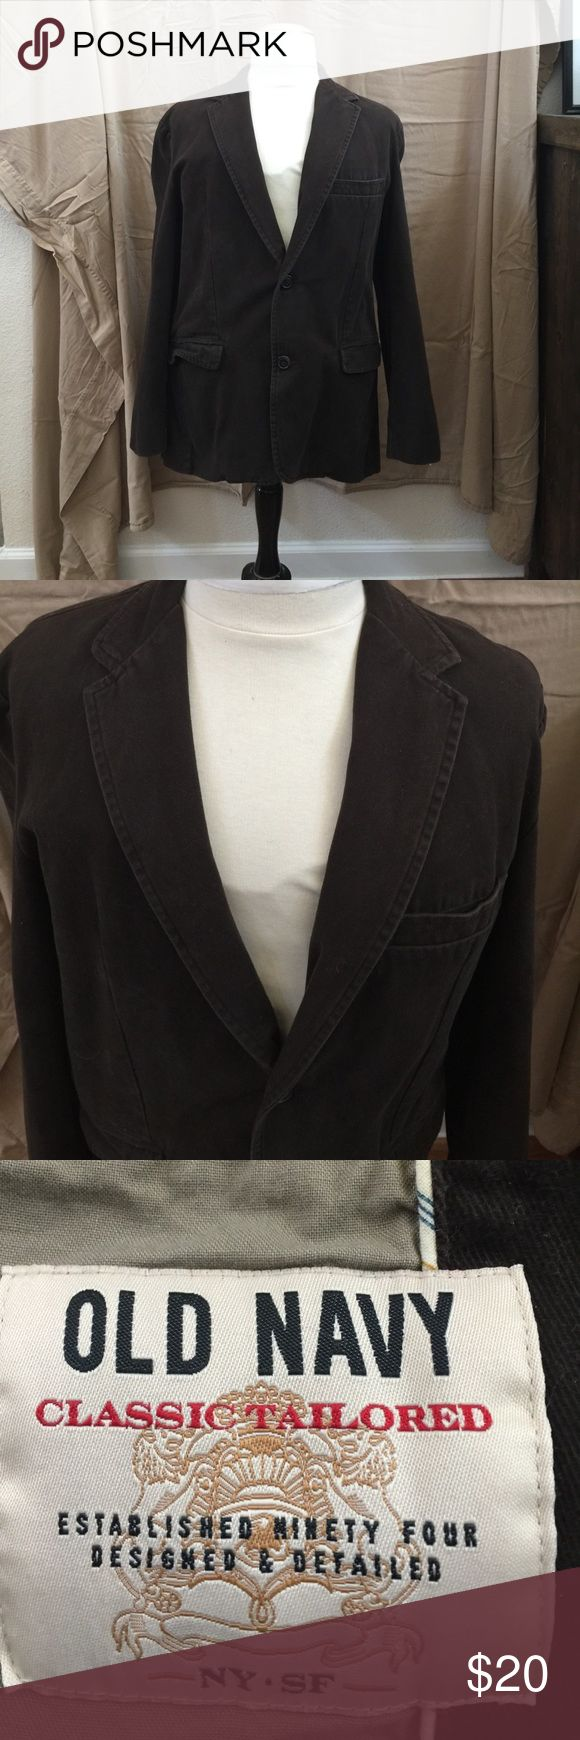 Old Navy Blazer Men's Blazer Very good used condition; chocolate brown; soft, brushed cotton fabric is naturally and uniformly faded to give a casual rugged appearance; pairs very well with jeans or chinos, as well as collard, button-up shirts or a plain white tee. Old Navy Suits & Blazers Sport Coats & Blazers